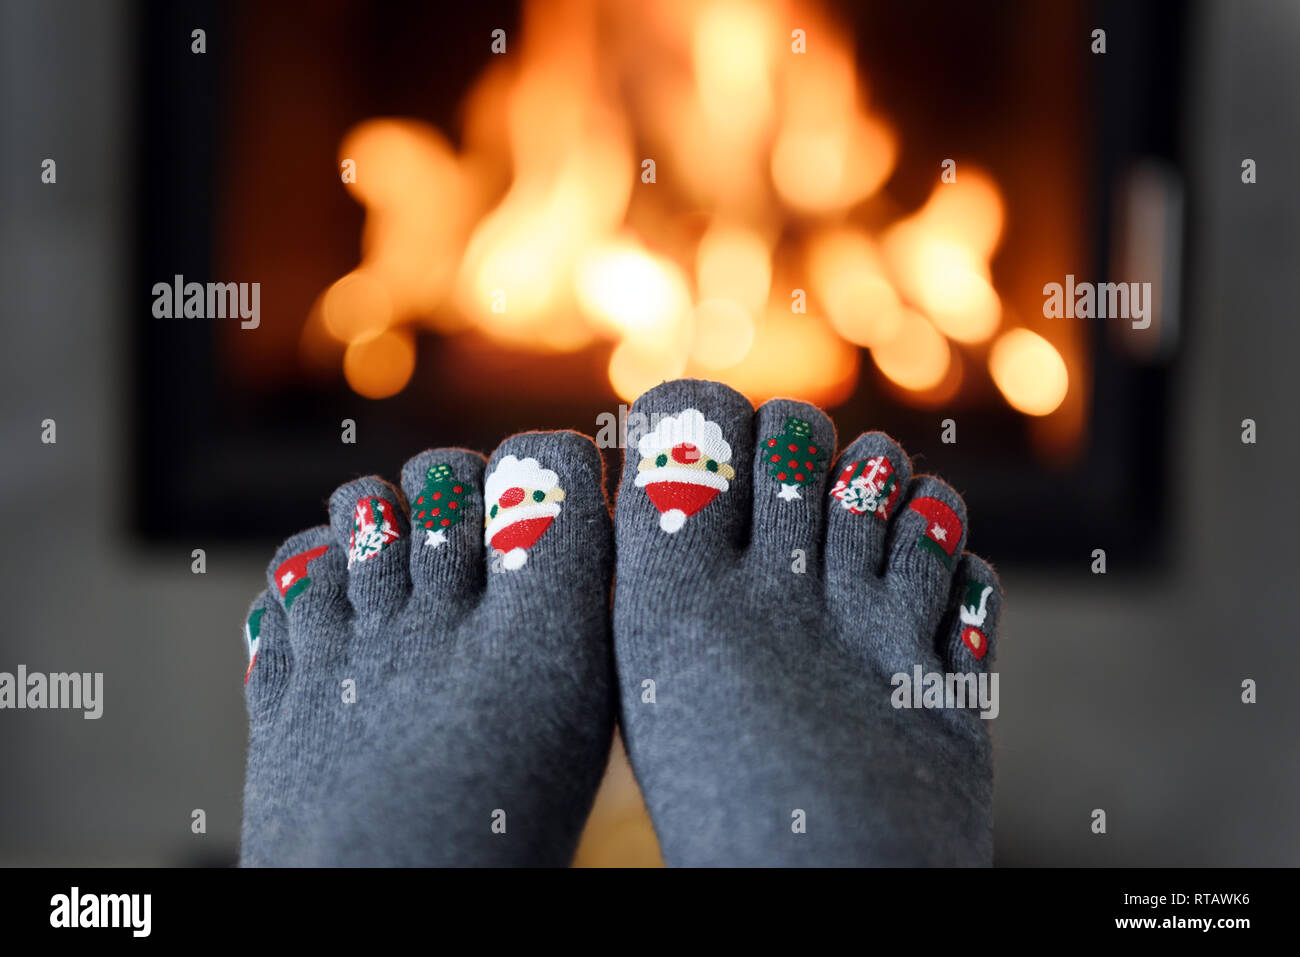 Burning fireplace and girl feet in funny wool socks on foreground. Hygge concept - Stock Image